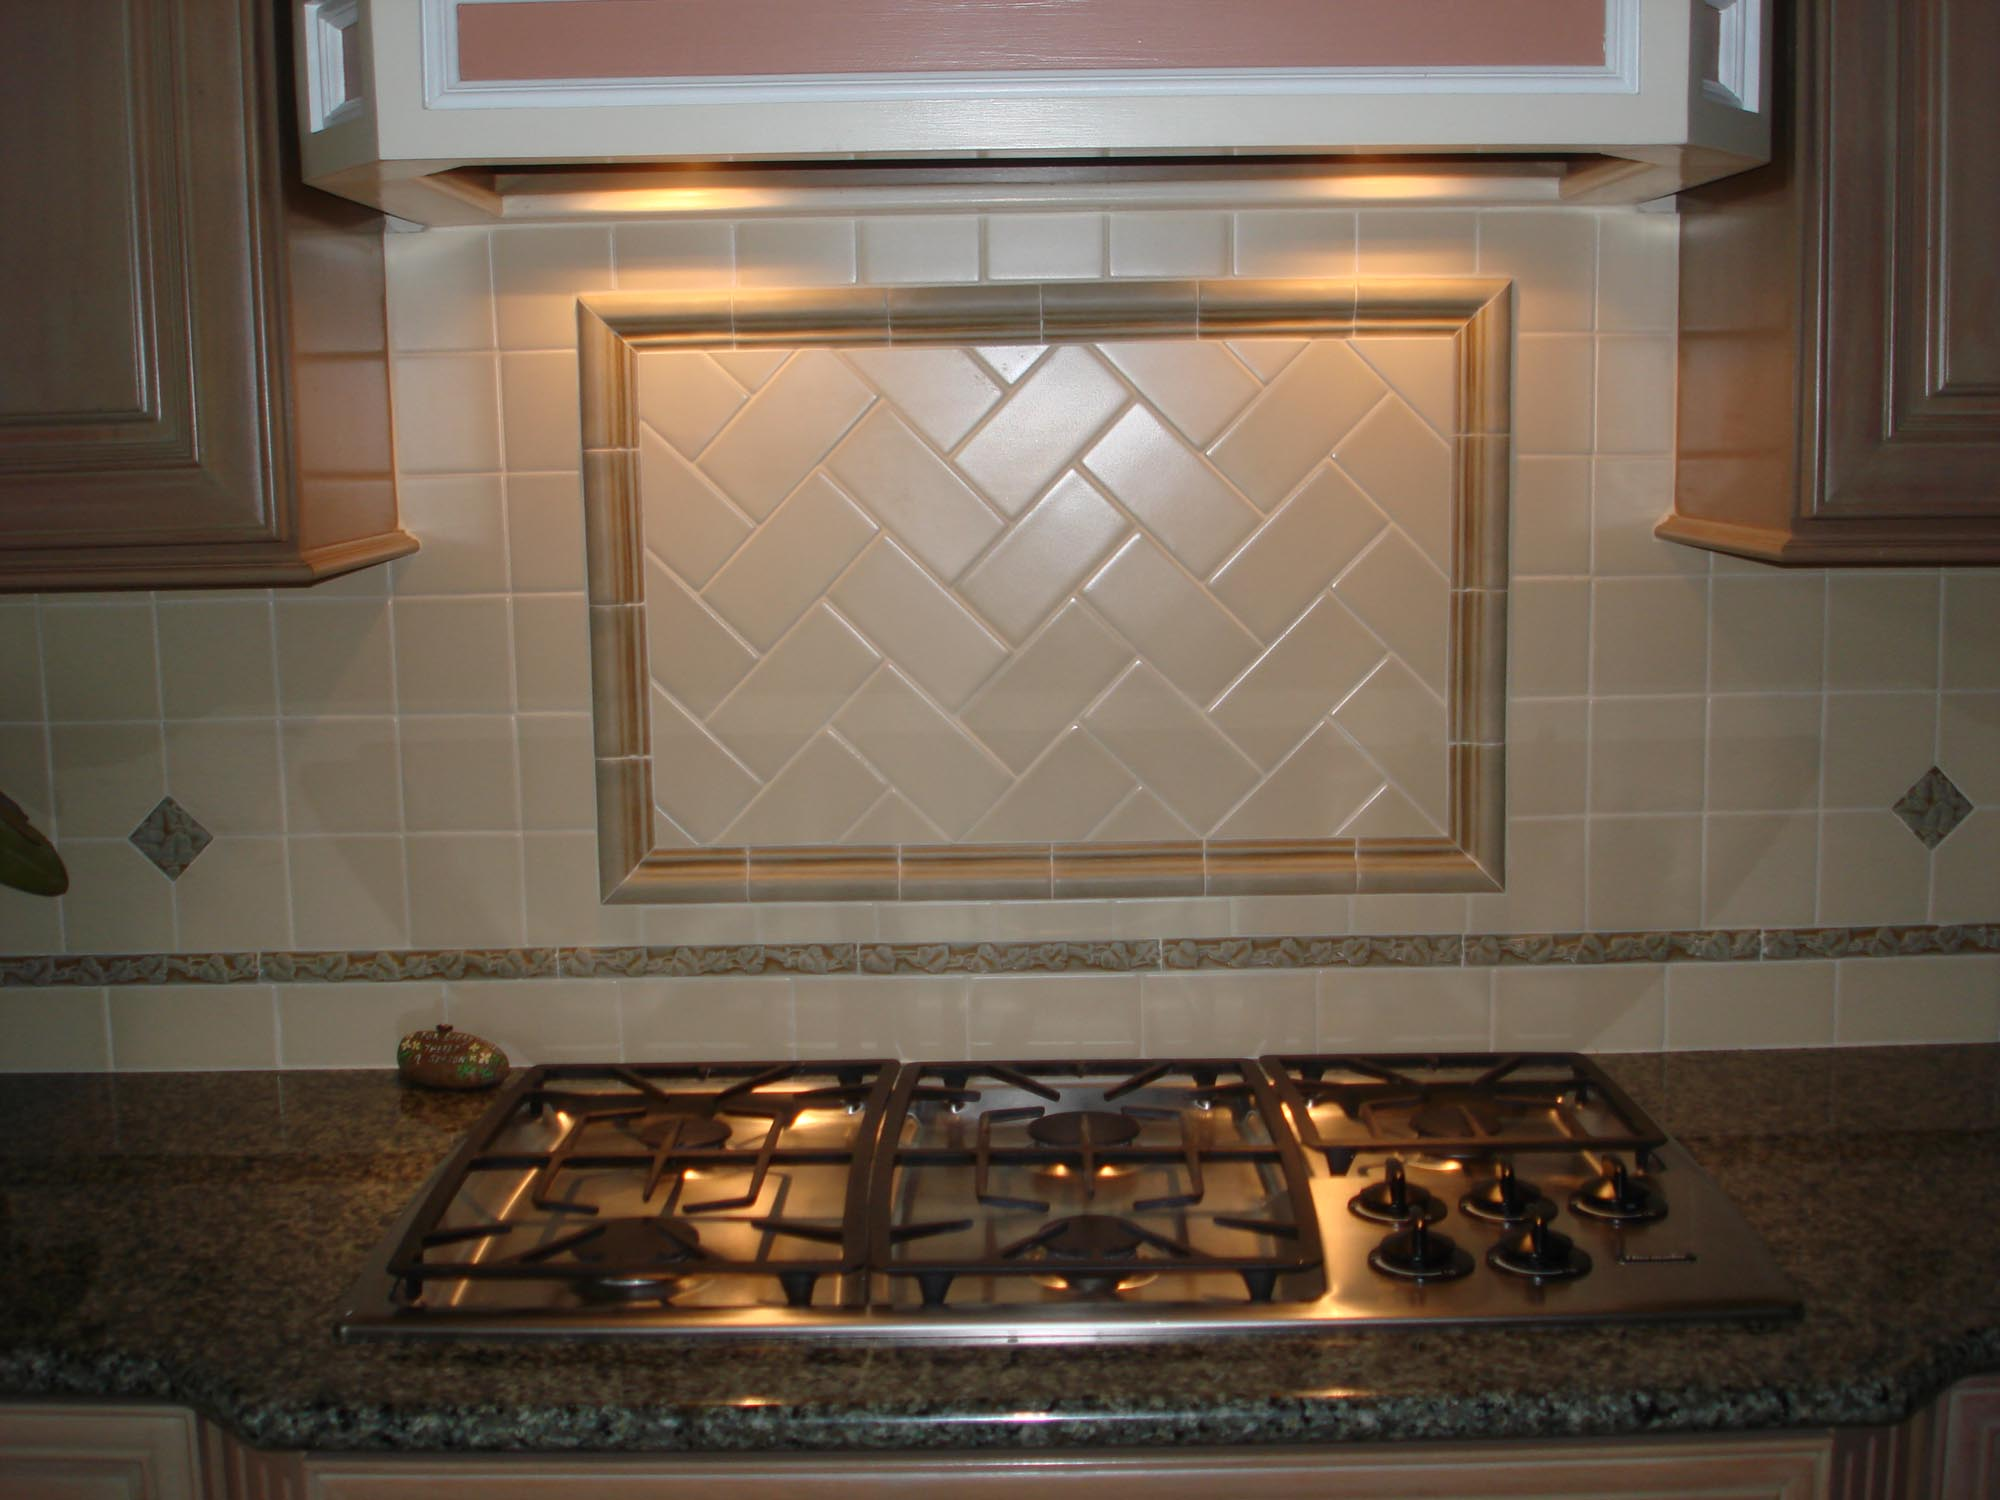 Handmade ceramic kitchen backsplash new jersey custom tile - Kitchen backsplash ceramic tile designs ...